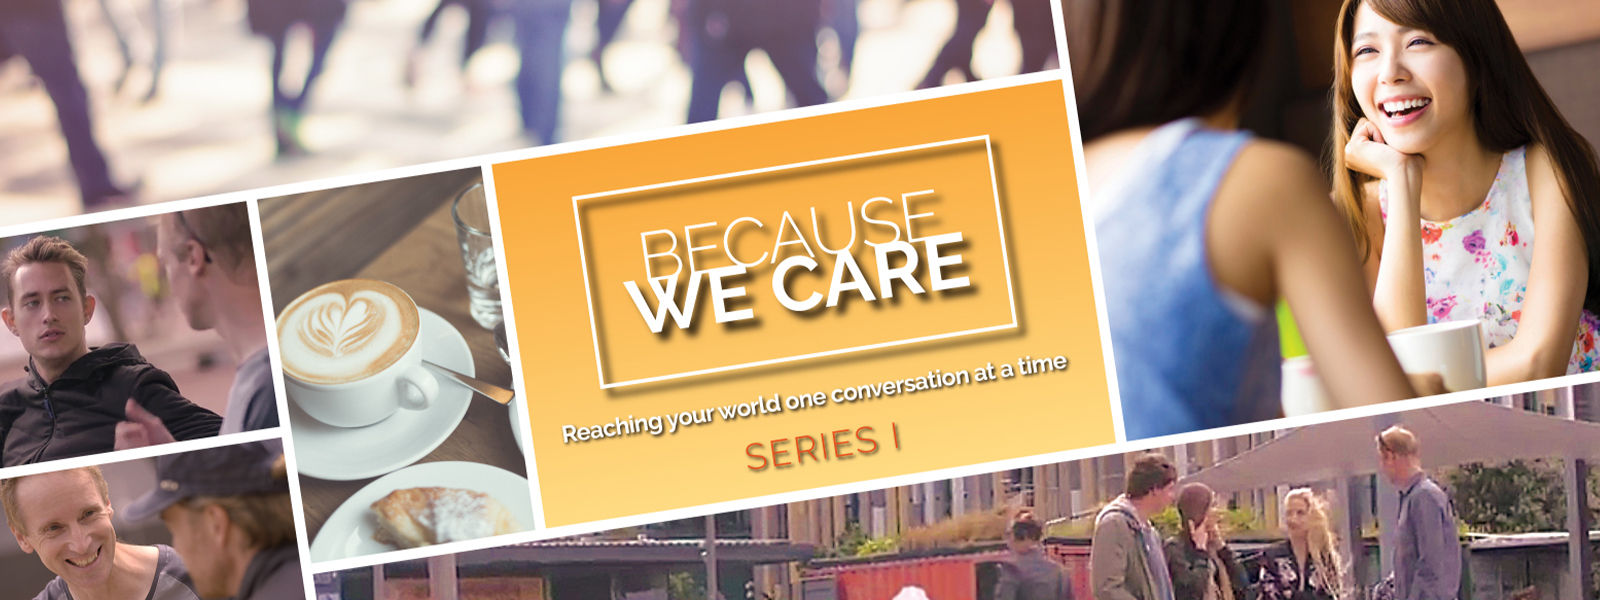 Because We Care - Series 1